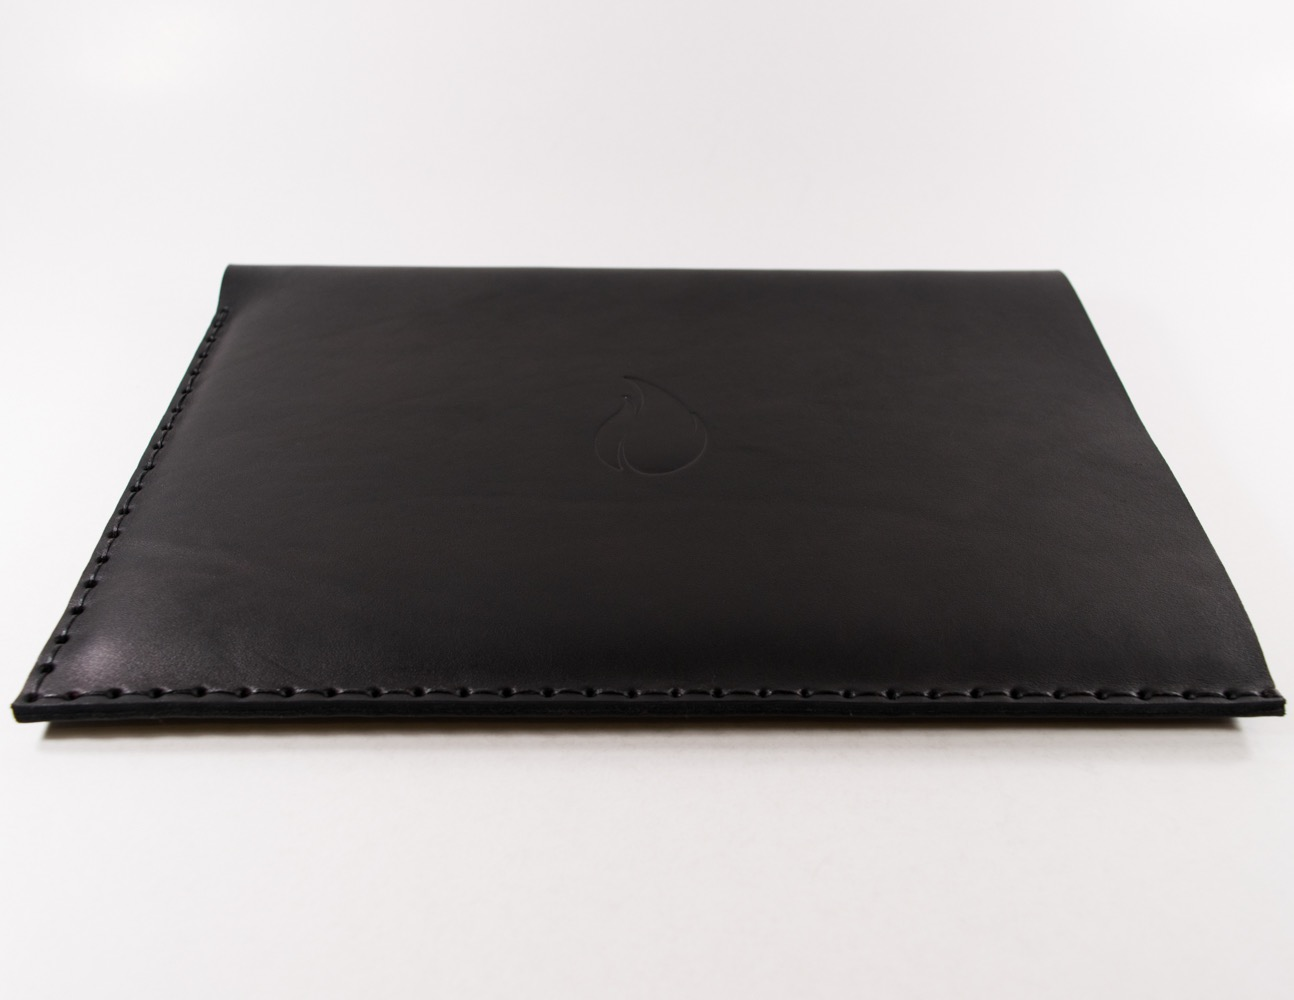 12-inch-macbook-black-thick-natural-leather-sleeve-case-straight-cut-by-firecult-1300-x-1000-2